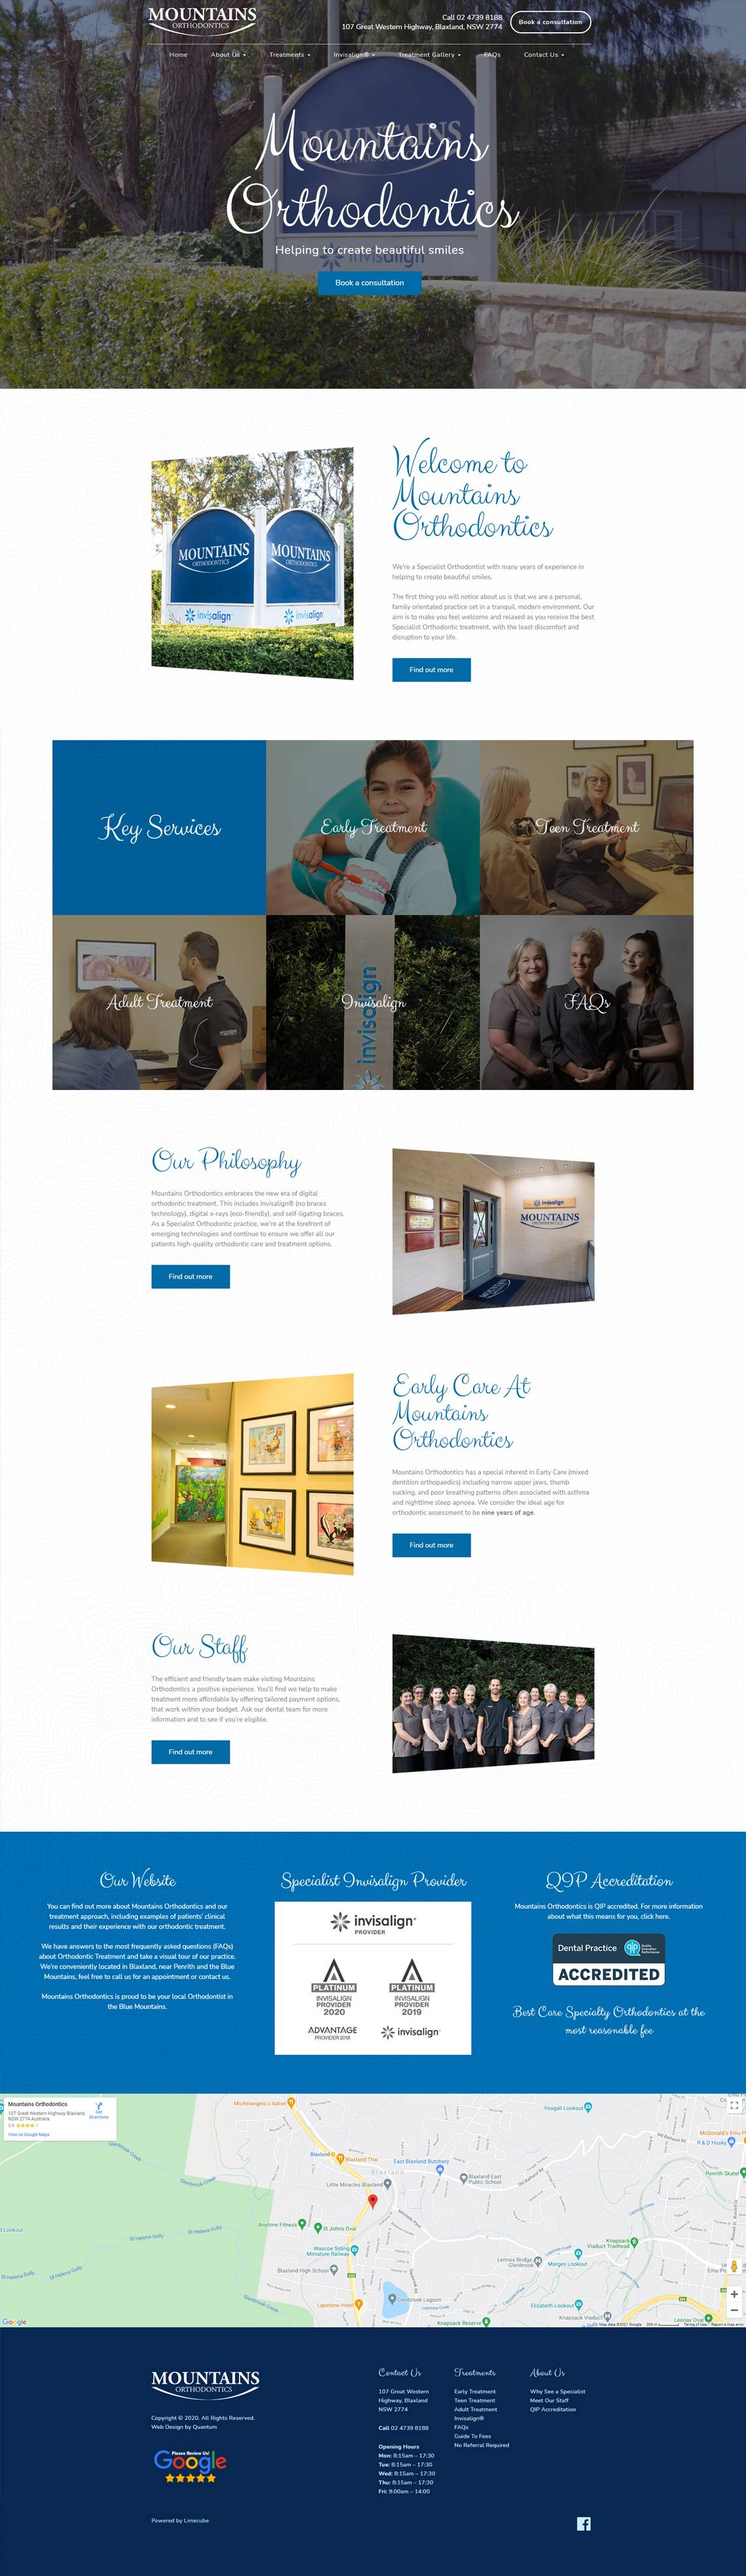 Mountain Orthodontics Full Home Page